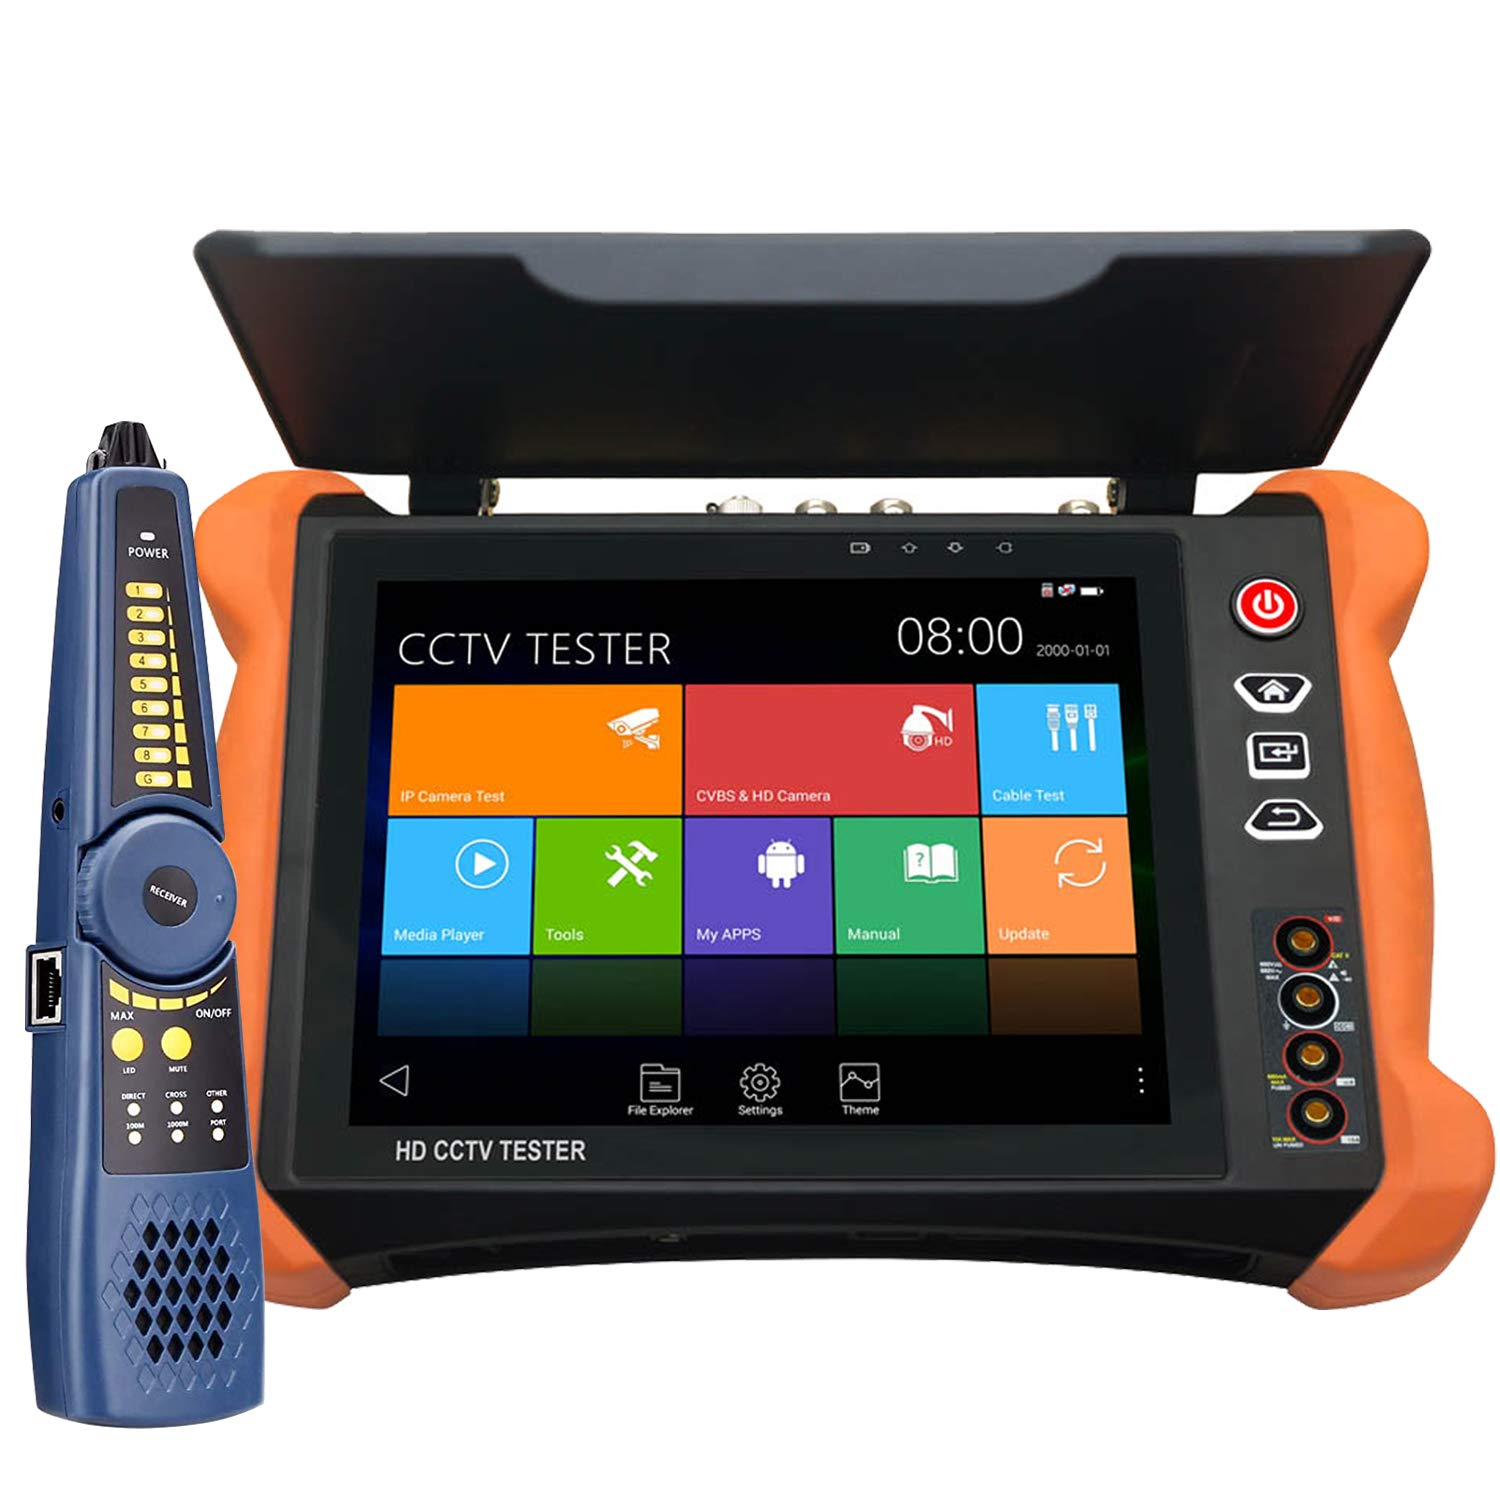 Rsrteng X9-MOVTADHS Full Features 4K CCTV Camera Tester 8-inch IPS Touch Screen Monitor 2048x1536 CCTV Tester with HDTVI HDCVI AHD SDI IP Camera Support DMM OPM VFL TDR Features POE WiFi H.265 HDMI